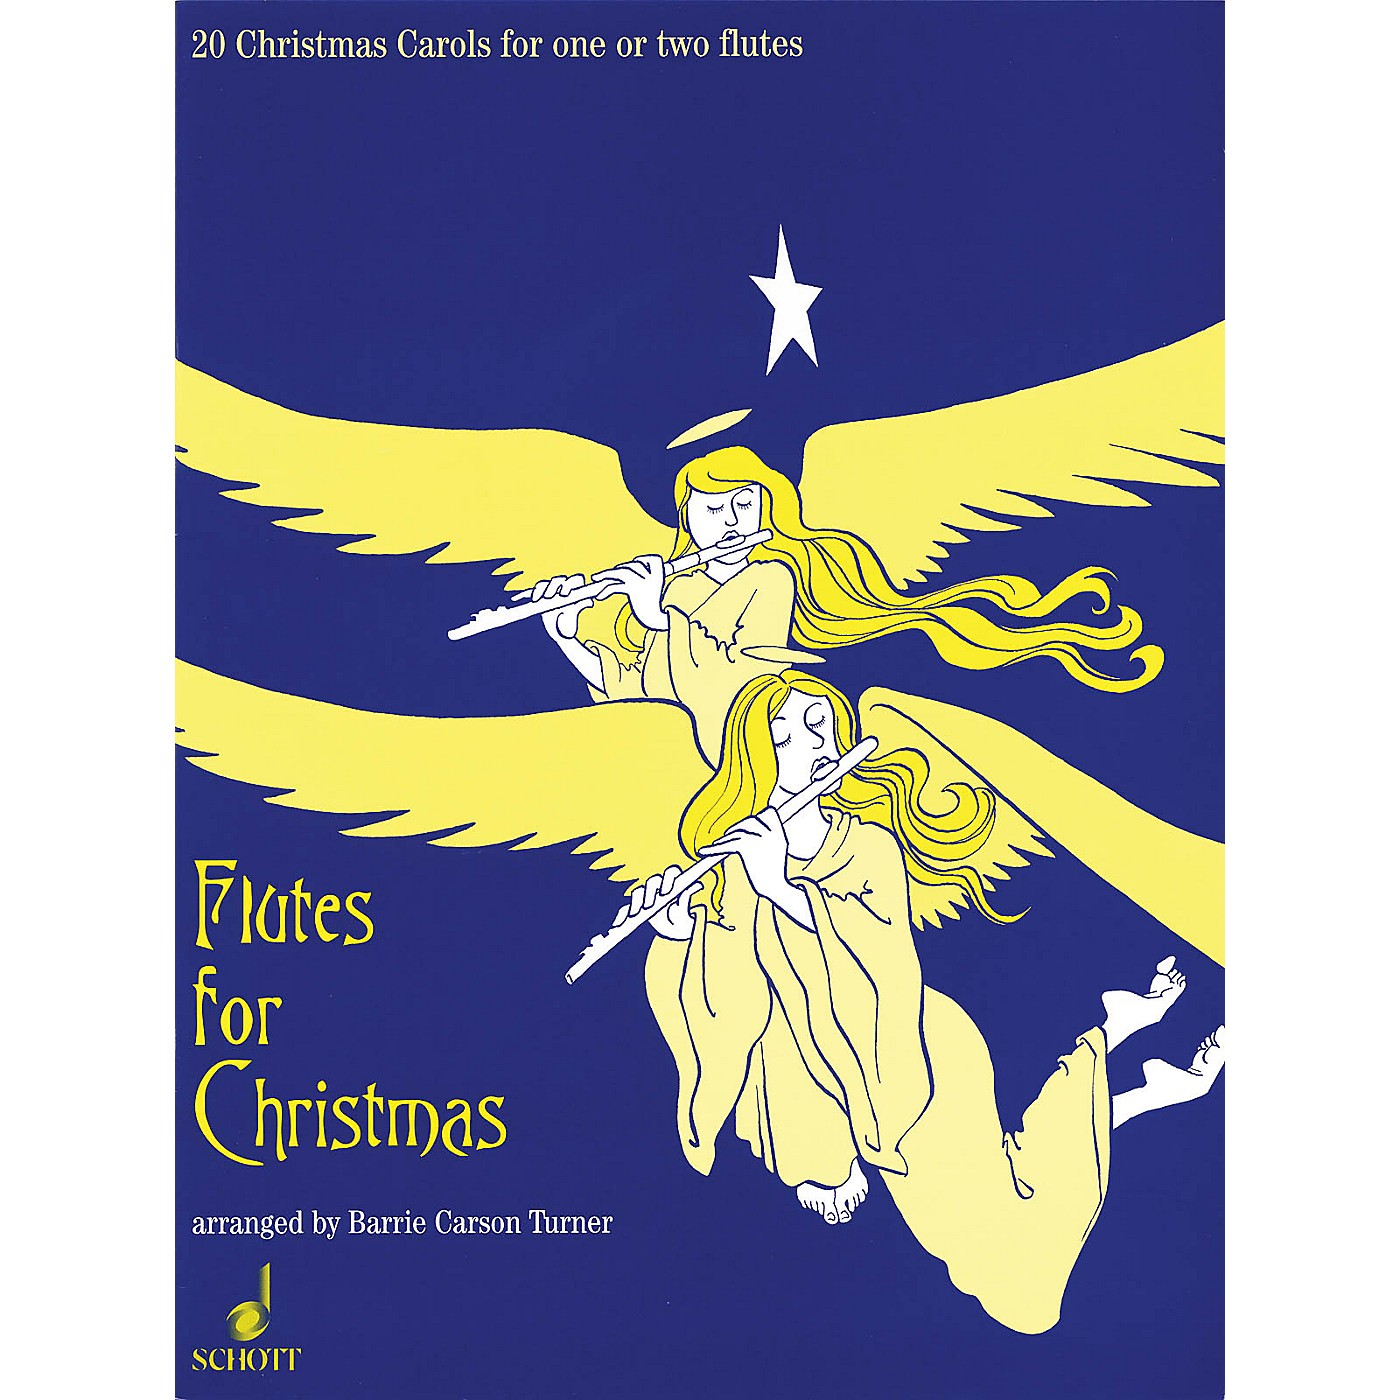 Schott Flutes for Christmas (20 Christmas Carols for One or Two Flutes) Schott Series thumbnail